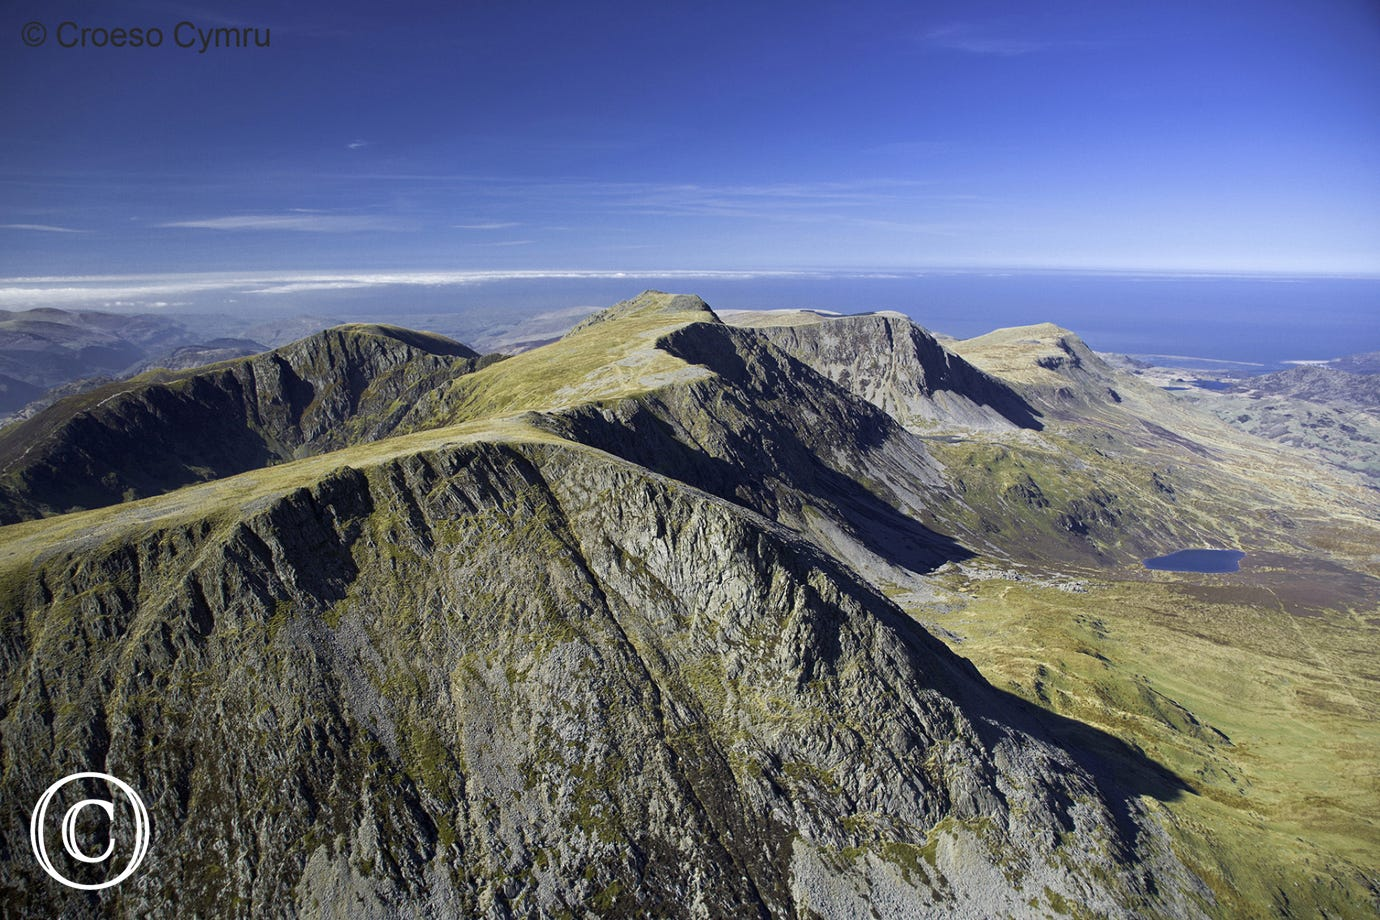 Breath-taking views from the peak of Cader Idris